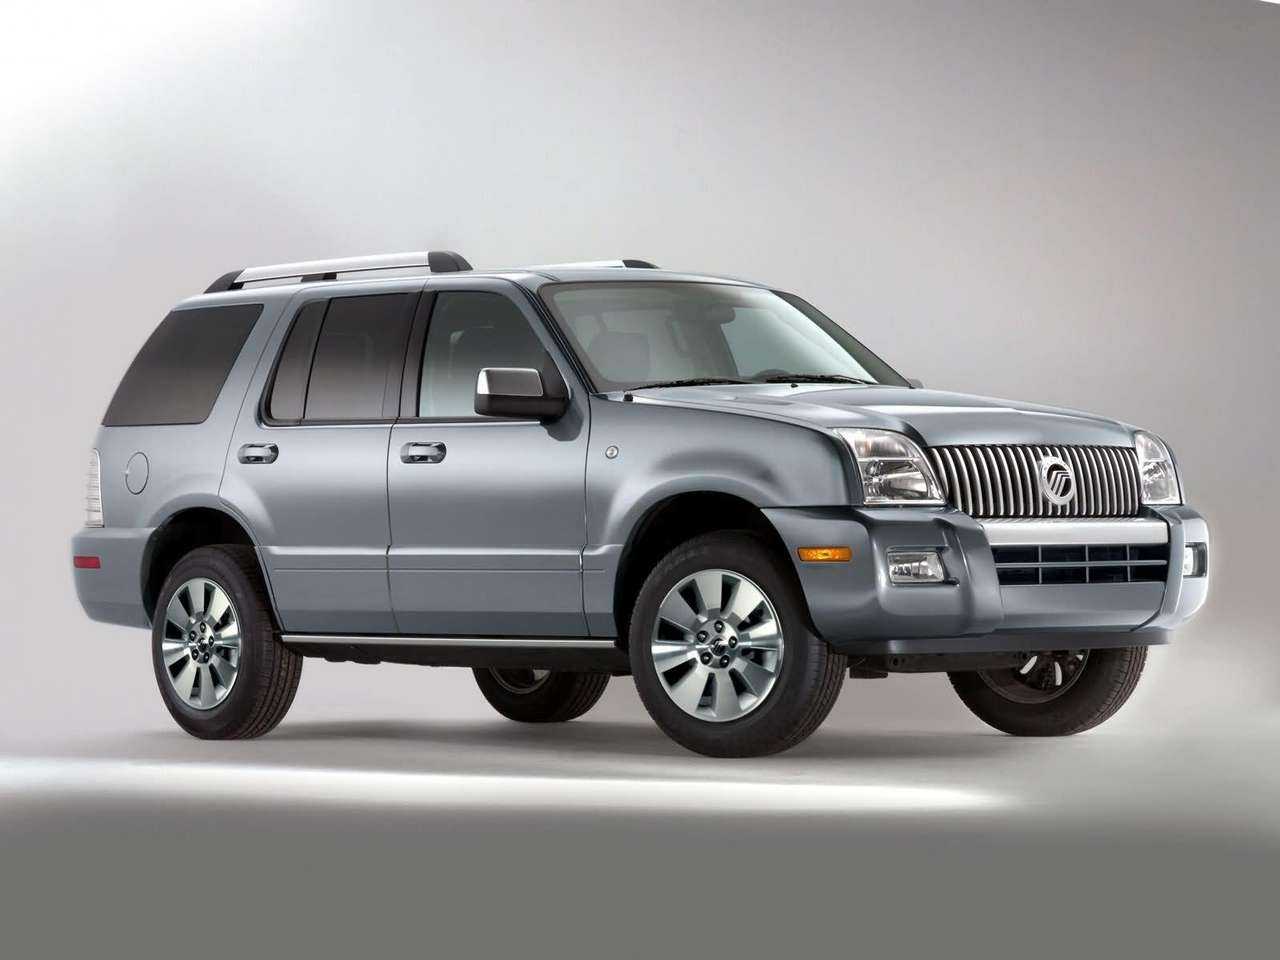 2009 Mercury Mountaineer Premier picture